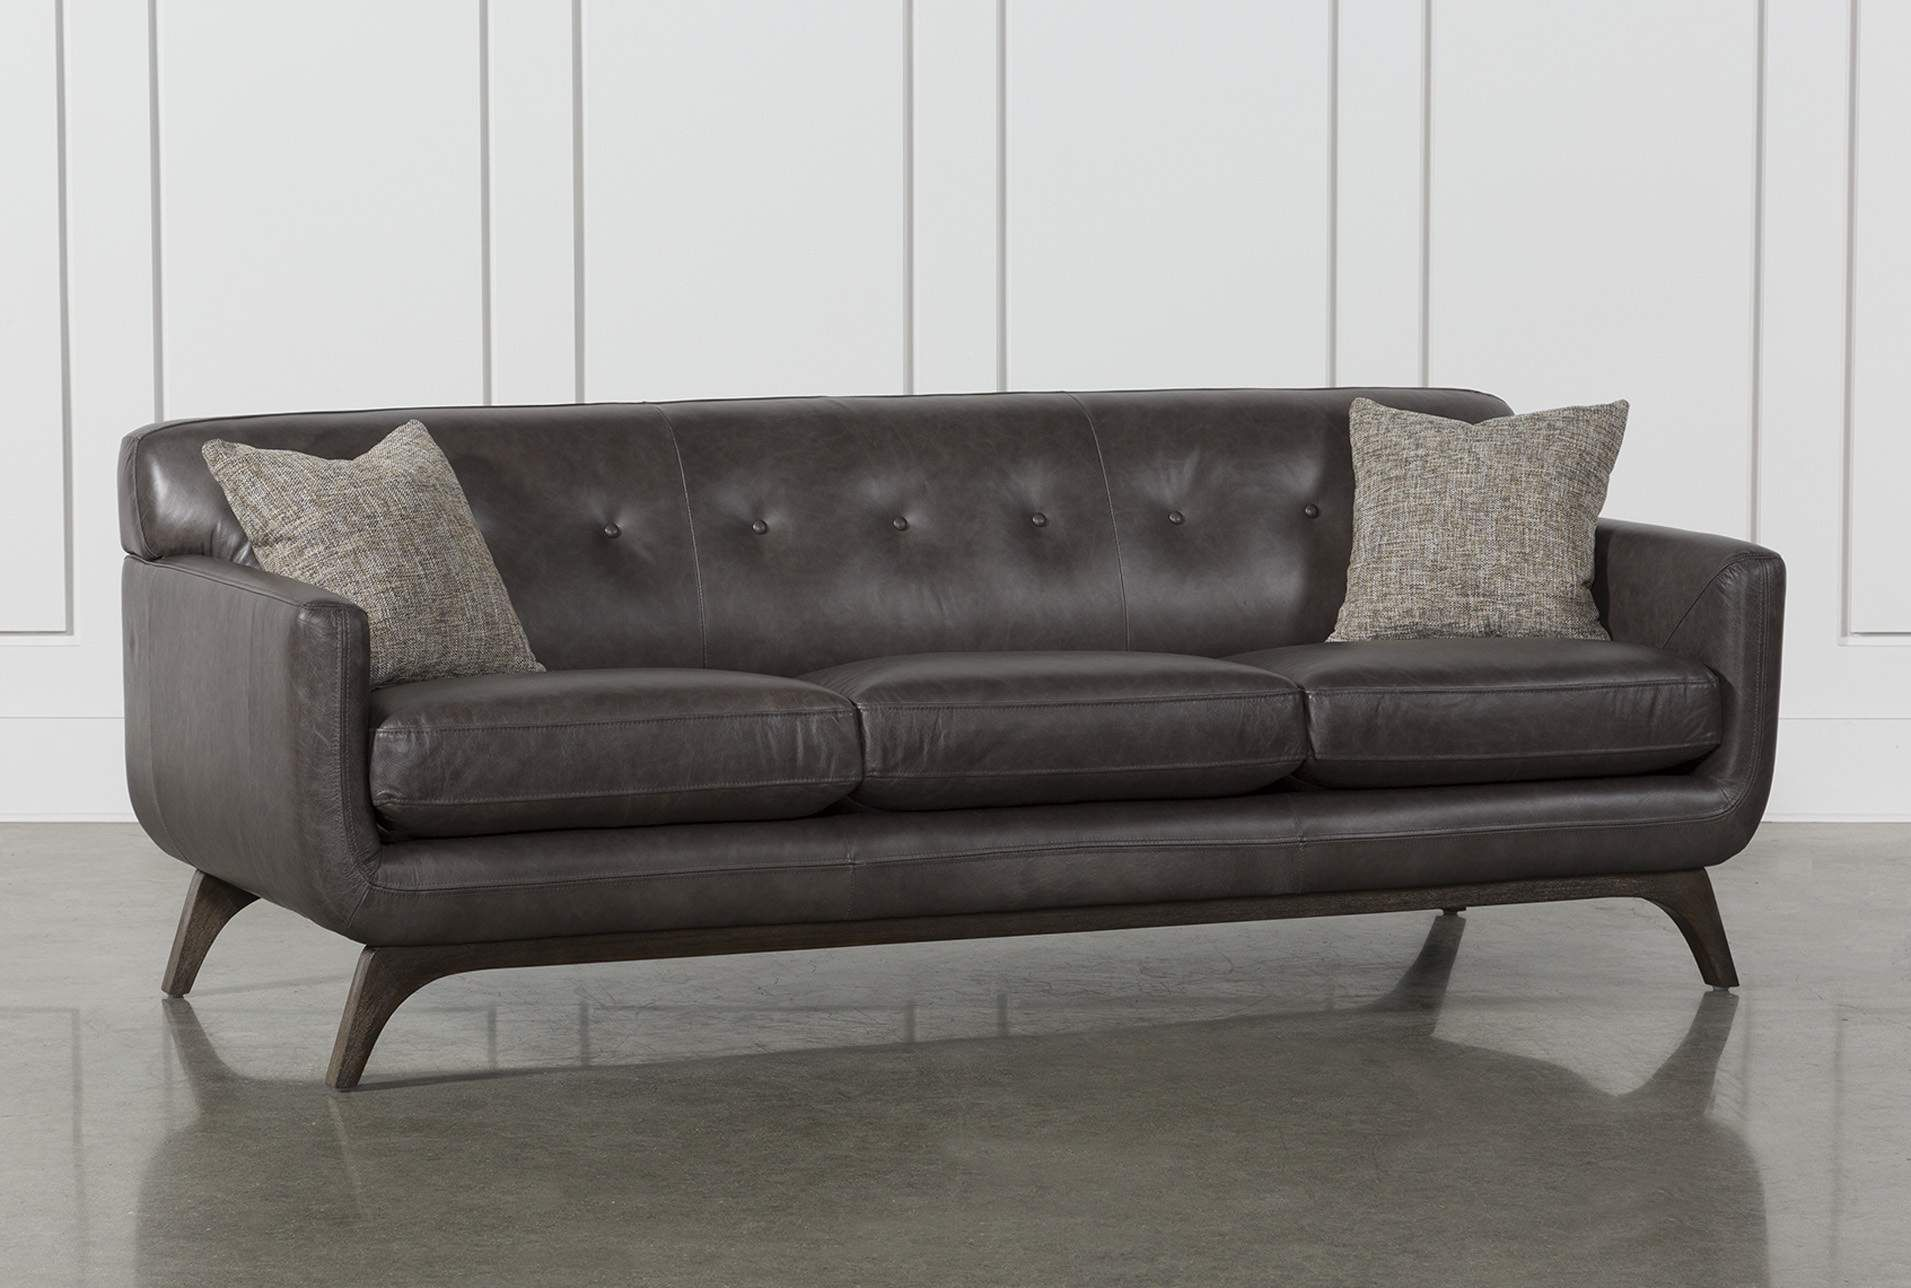 Gray Leather Sofa A Timeless Choice For Your Modern Living Room Grey Leather Sofa Leather Sofa Grey Leather Couch